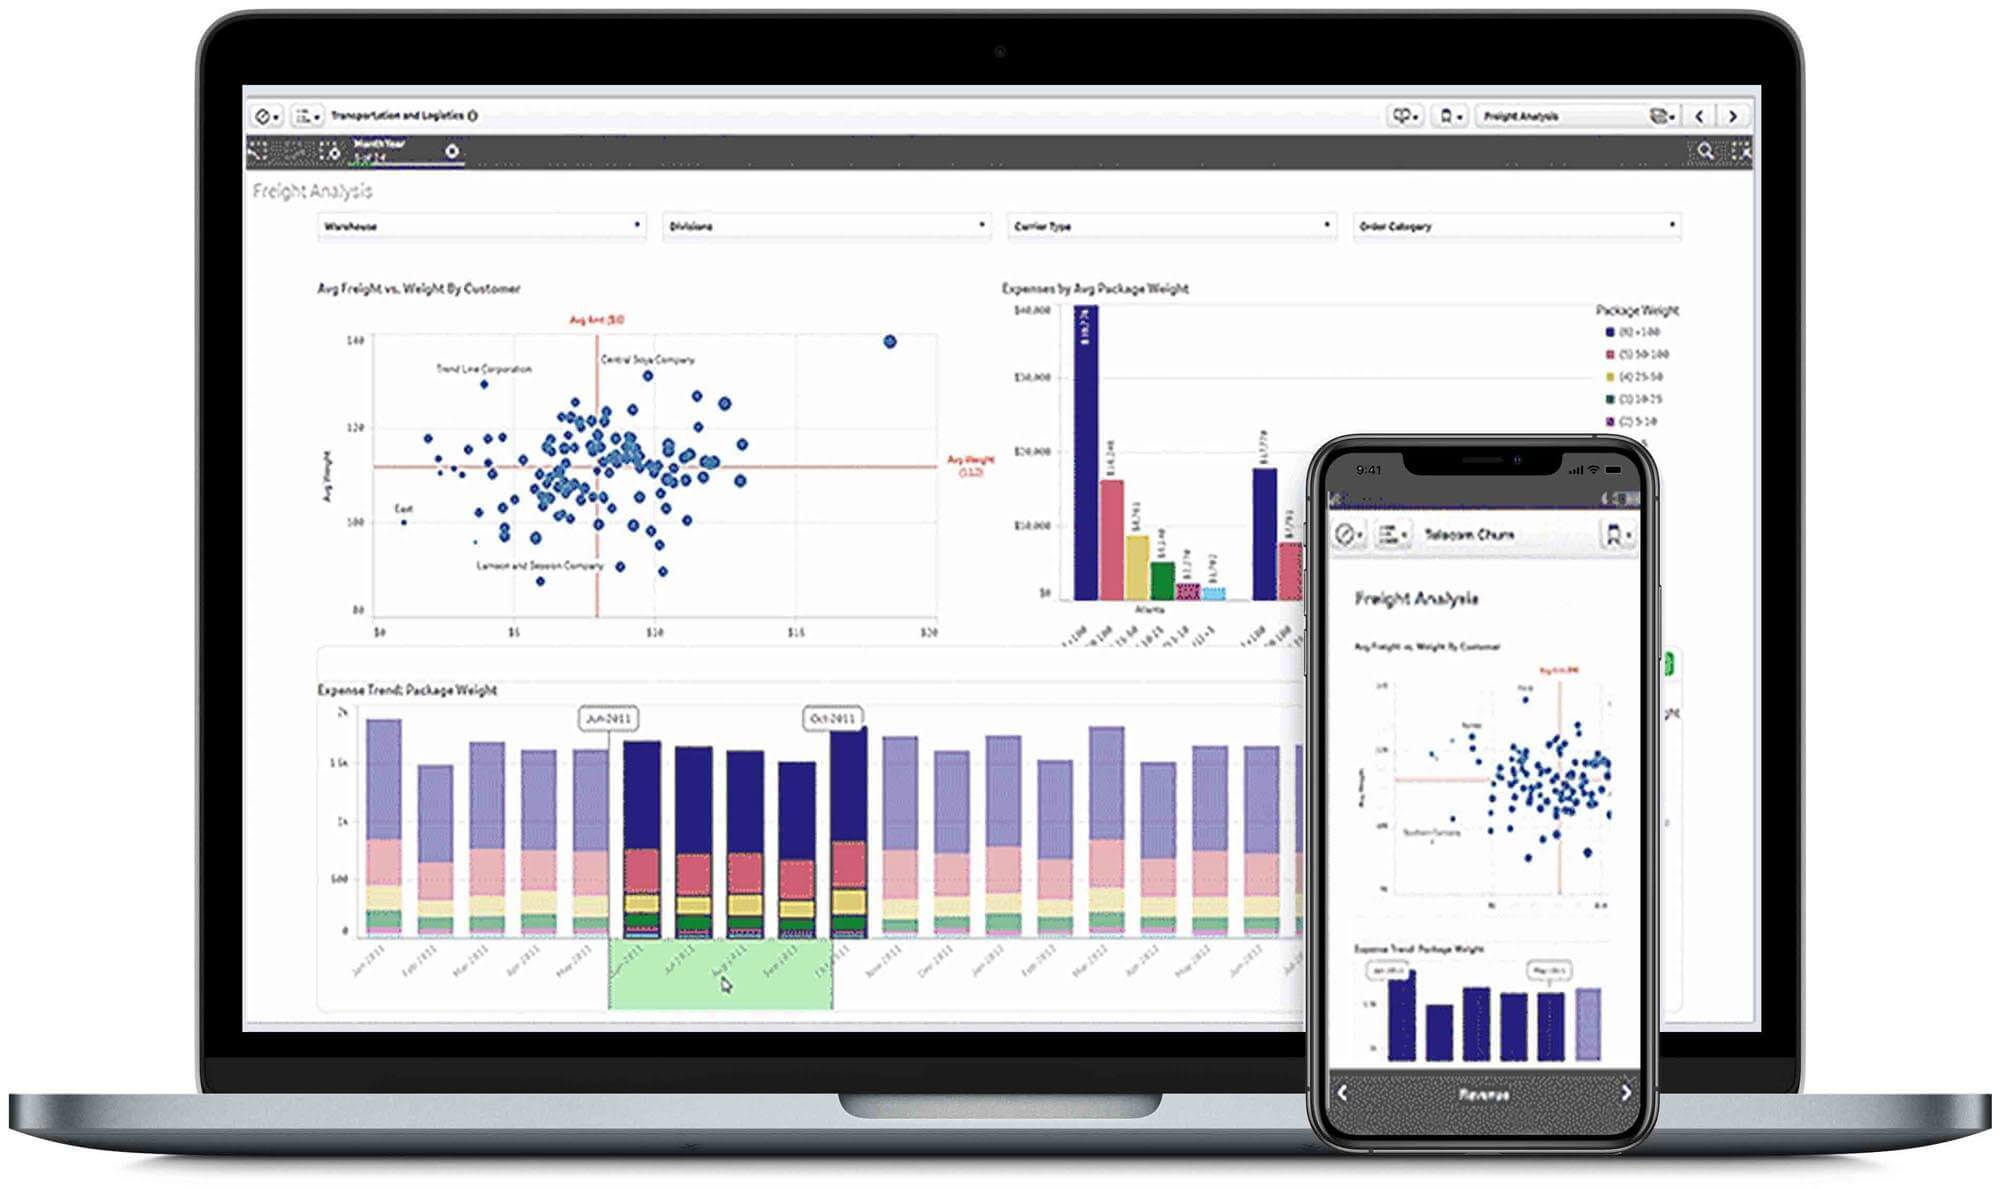 Qlik Sense una solución de Business Intelligence